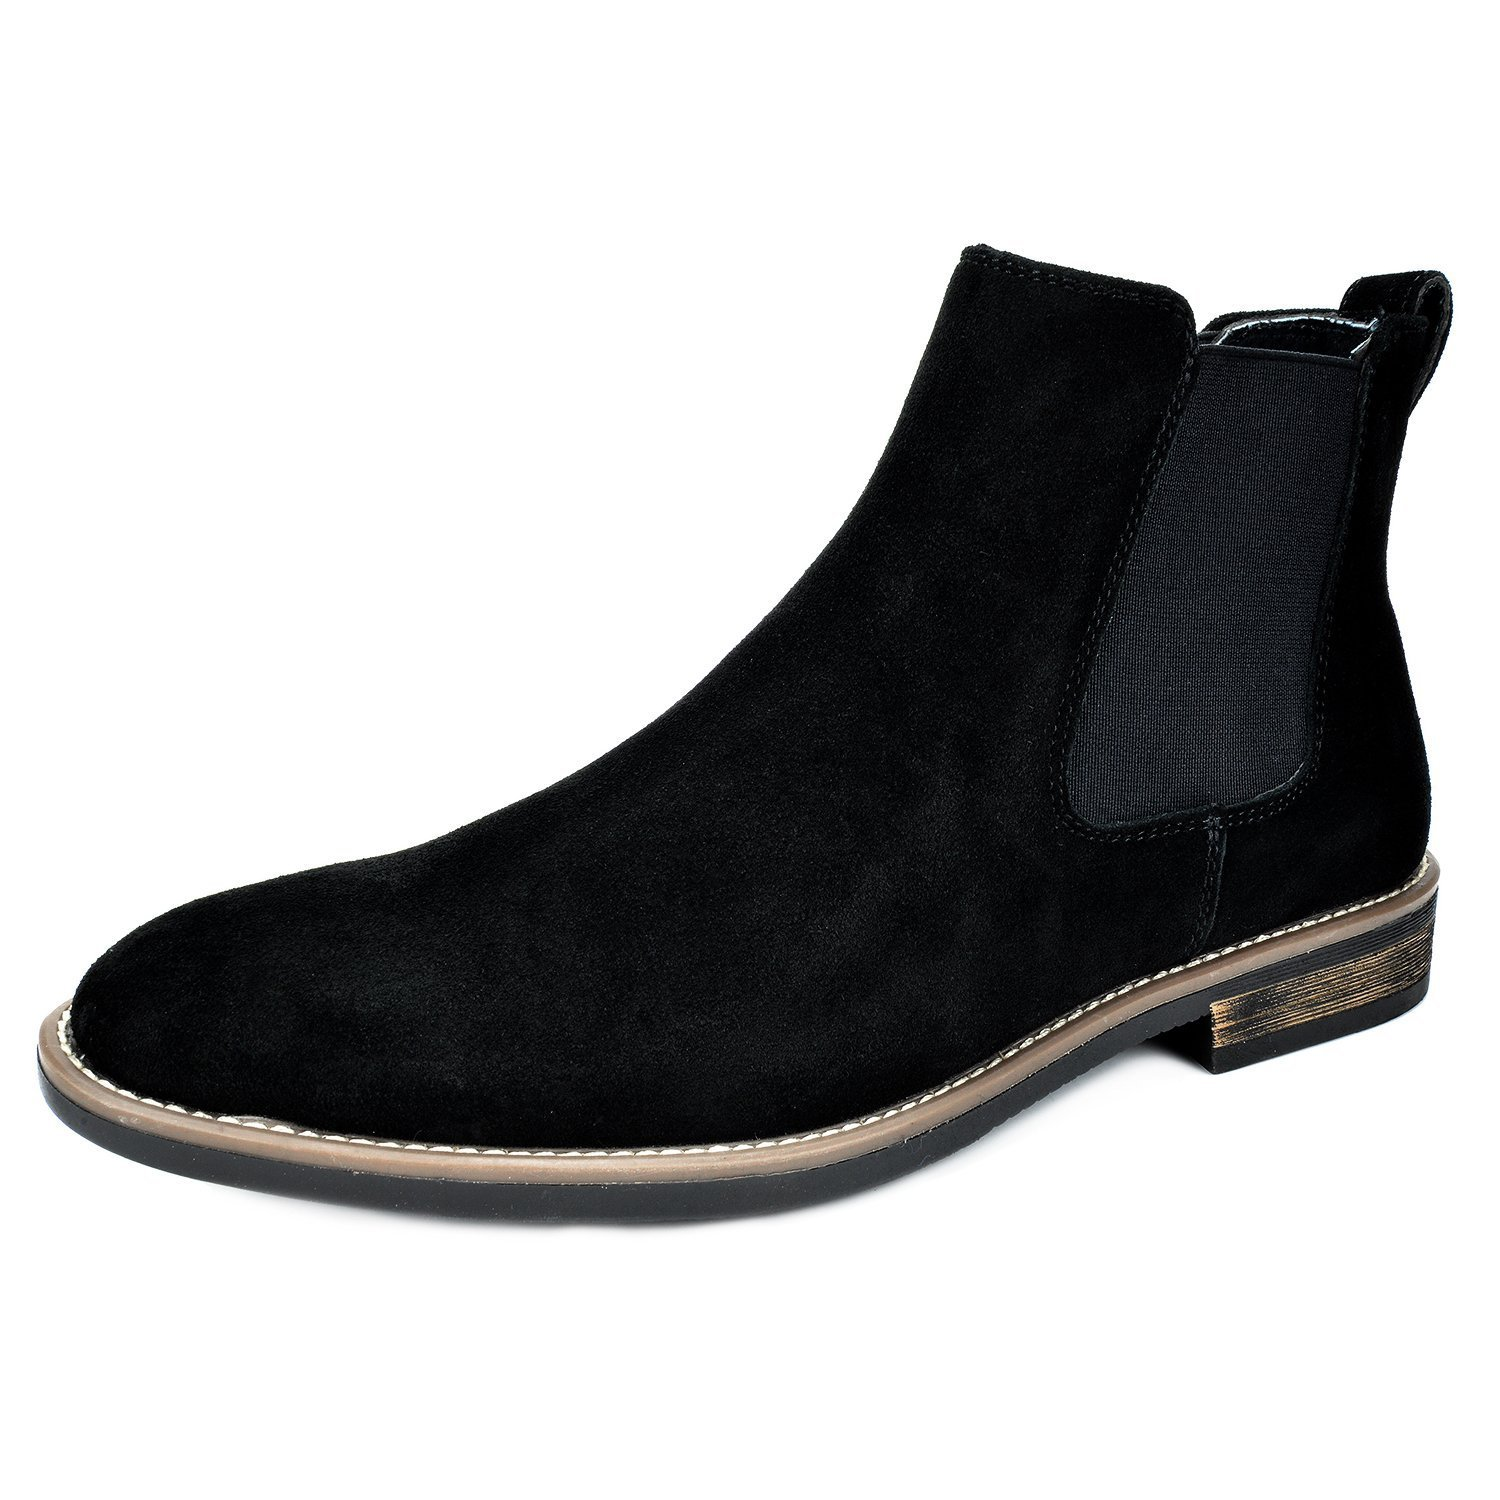 afc06bc41 BRUNO MARC NEW YORK Men s Urban-06 Suede Leather Chukka Ankle Boots product  image